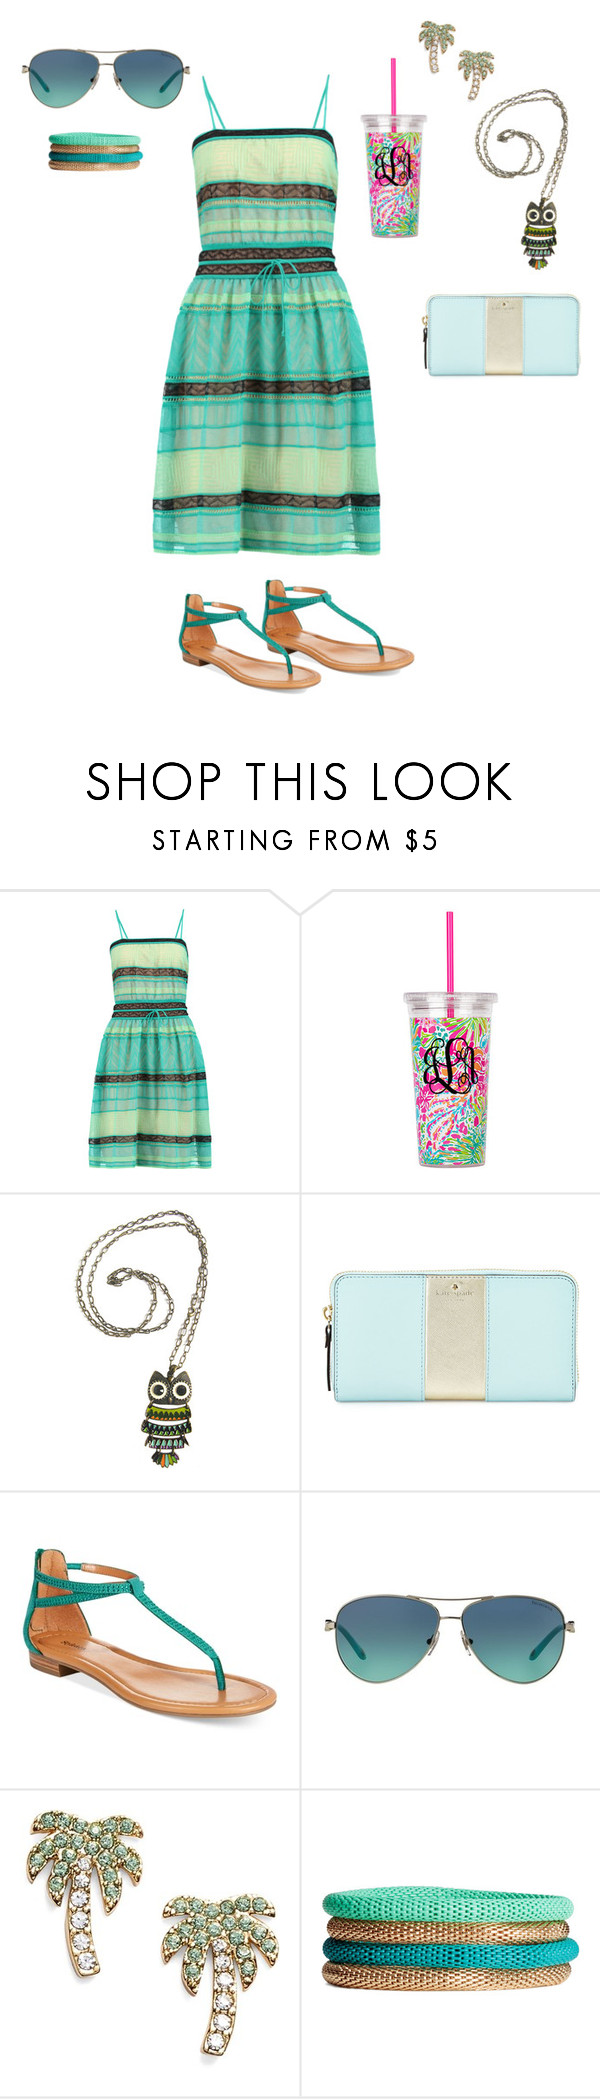 """""""Untitled #80"""" by fatimazahraa14mrh ❤ liked on Polyvore featuring M Missoni, Kate Spade, Style & Co., Tiffany & Co. and H&M"""